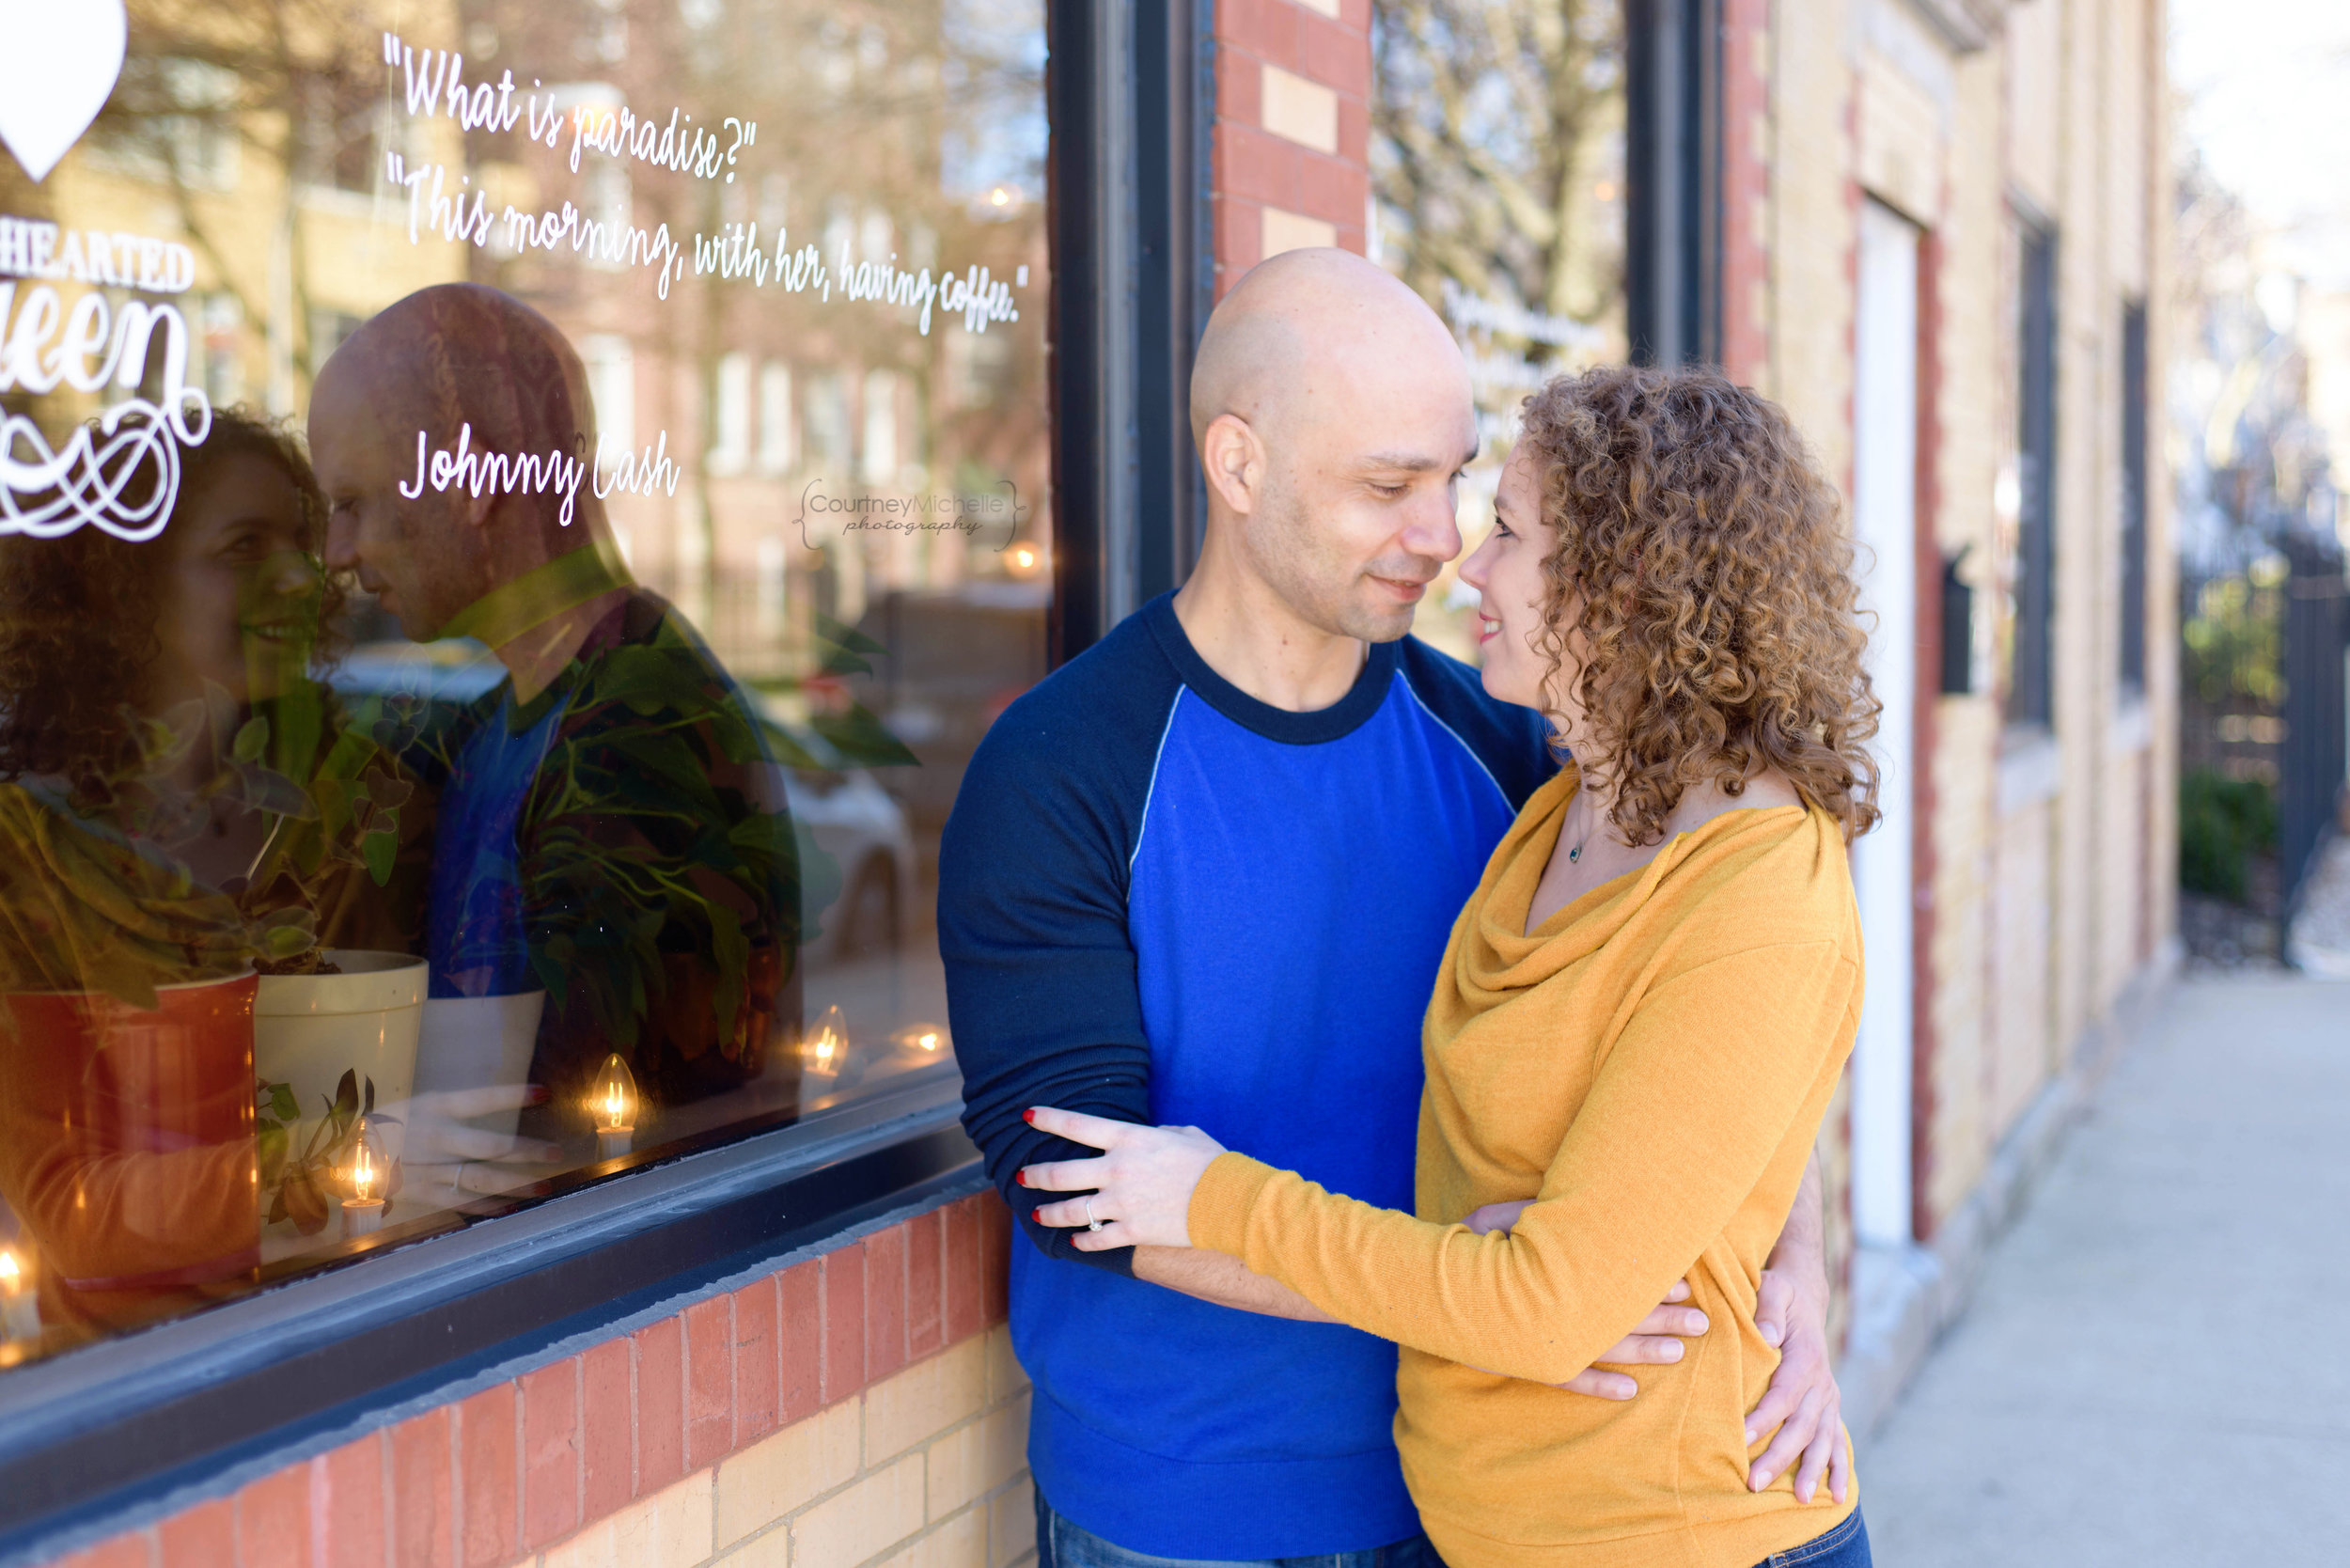 chicago-engagement-session-photography-courtney-laper-couple-snuggling©CourtneyMichellePhotography_DSC4932.jpg